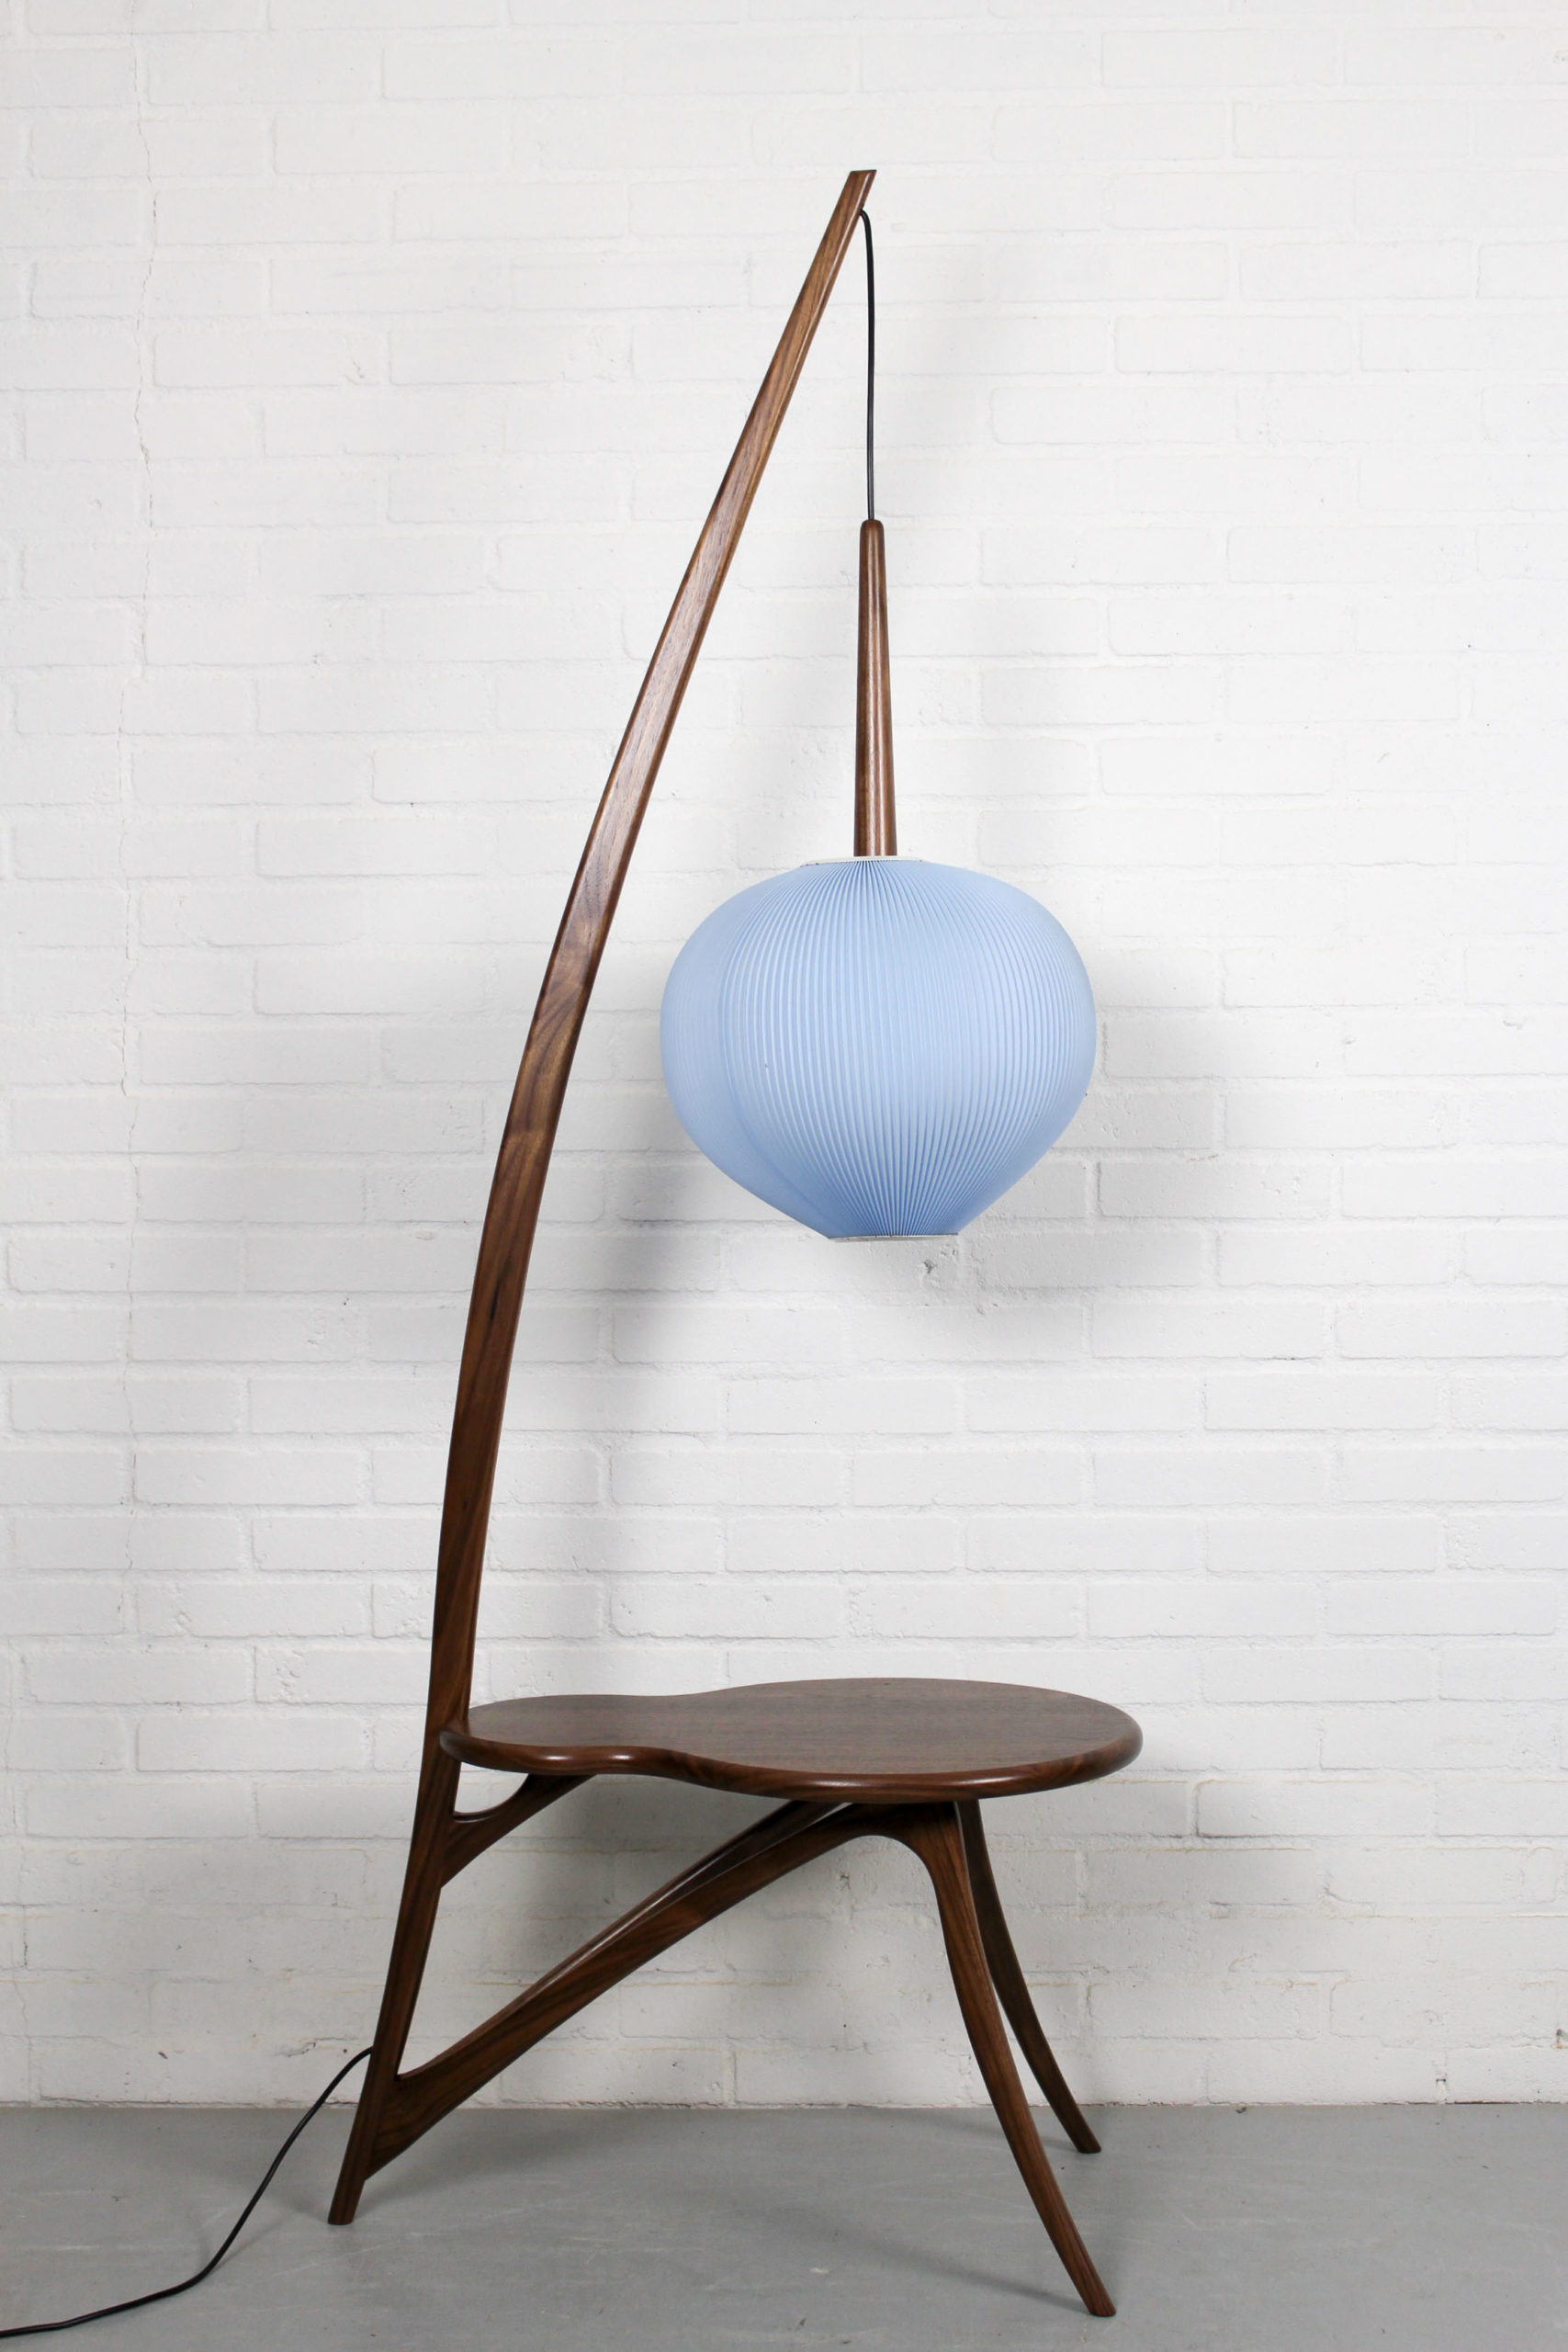 Image of: Mid Century Modern Floor Lamp And American Nut Table Blue The Great Apple